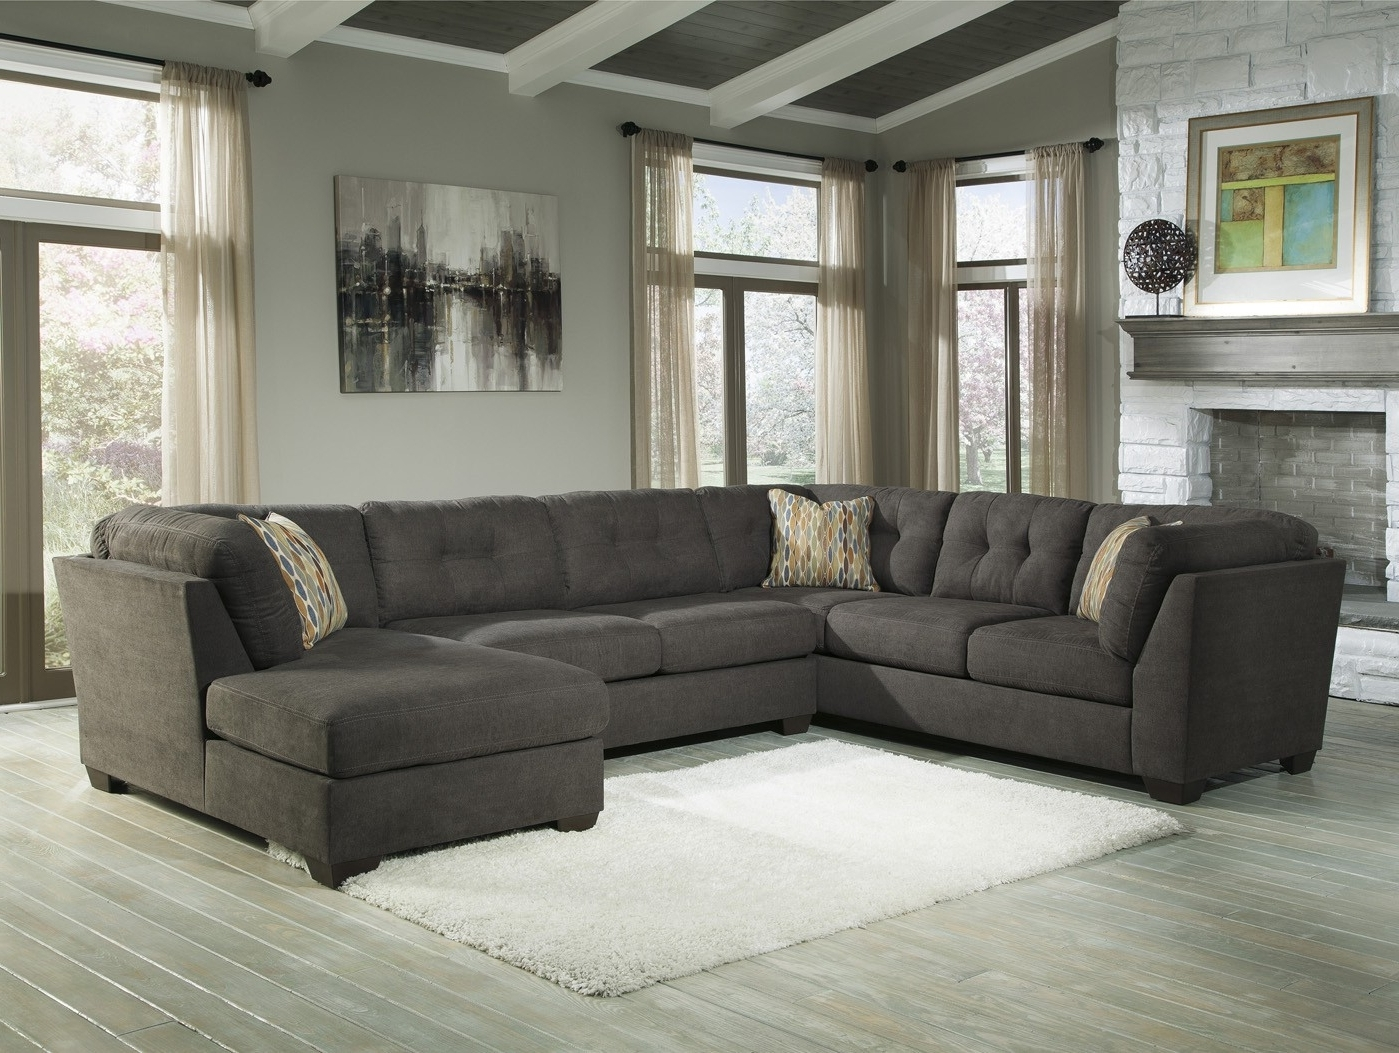 Elk Grove Ca Sectional Sofas Regarding Most Popular Delta City Steel 3 Piece Sectional Sofa With Right Arm Facing (View 7 of 15)